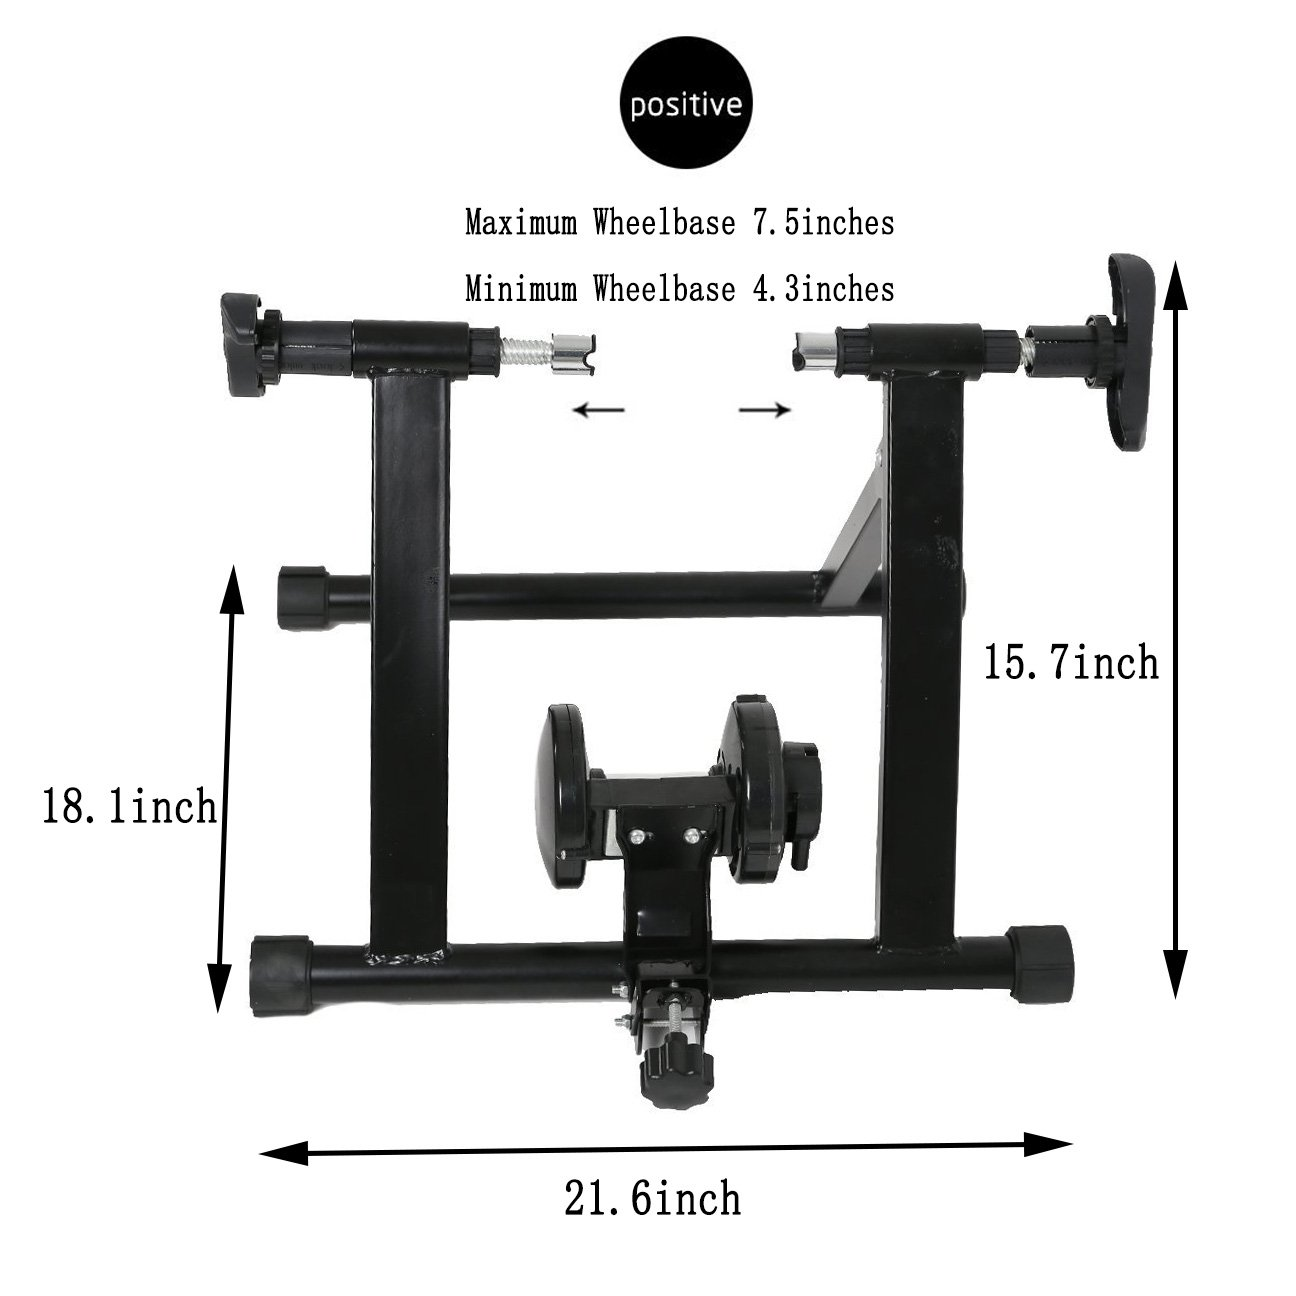 Karmas Product Exercise Resistance Bicycle Trainer Bike Magnetic Stand with Noise Reduction Wheel by Karmas Product (Image #3)